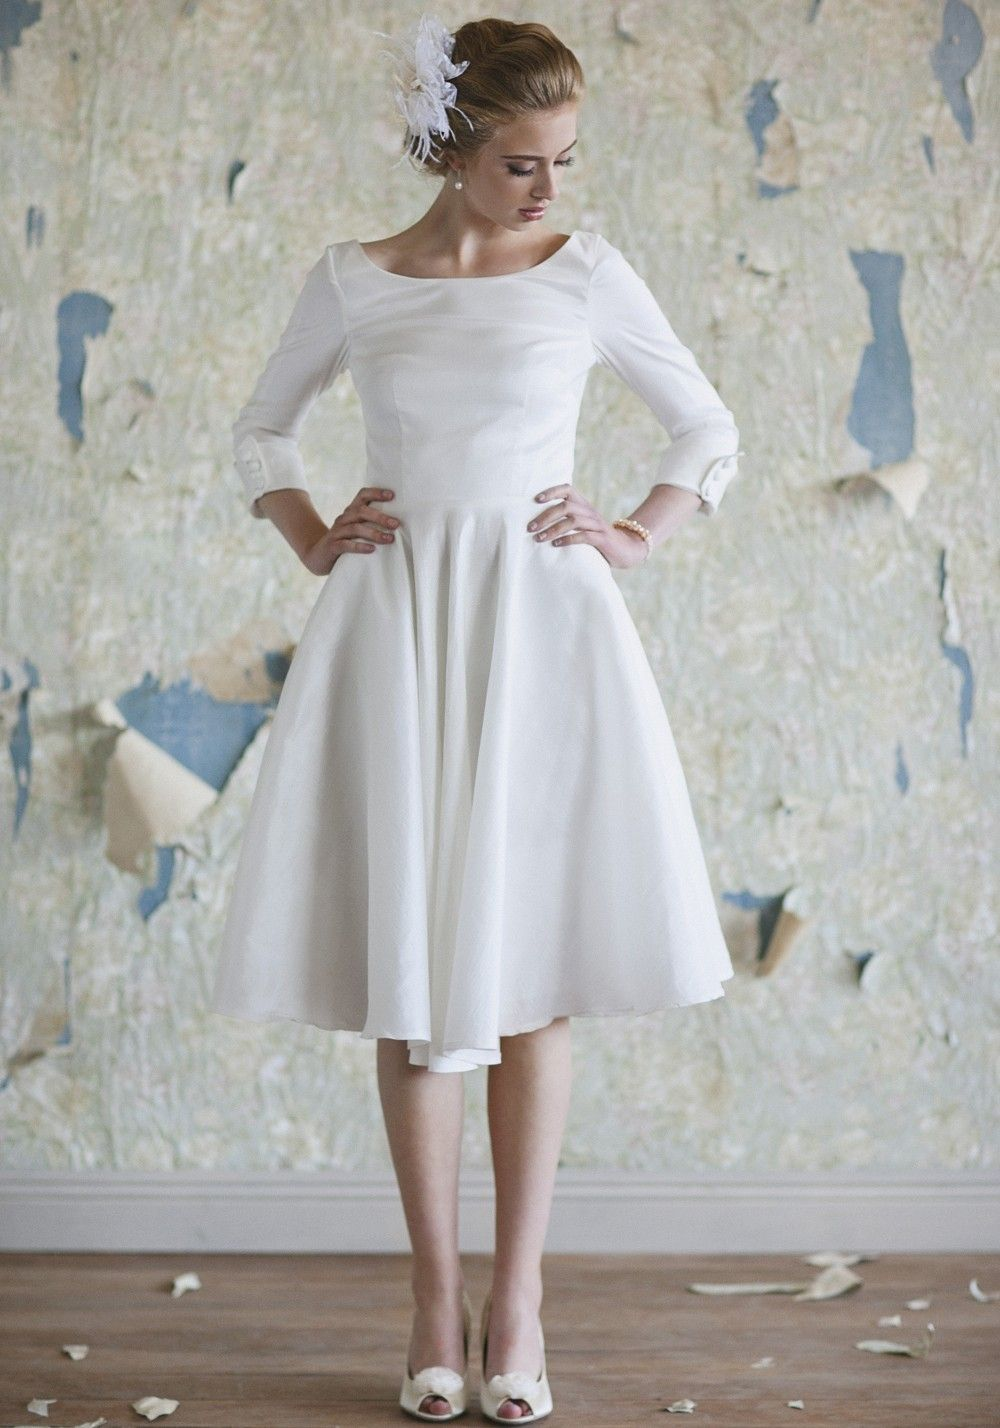 16 Non-Traditional Wedding Dresses for the Modern Bride | Pinterest ...